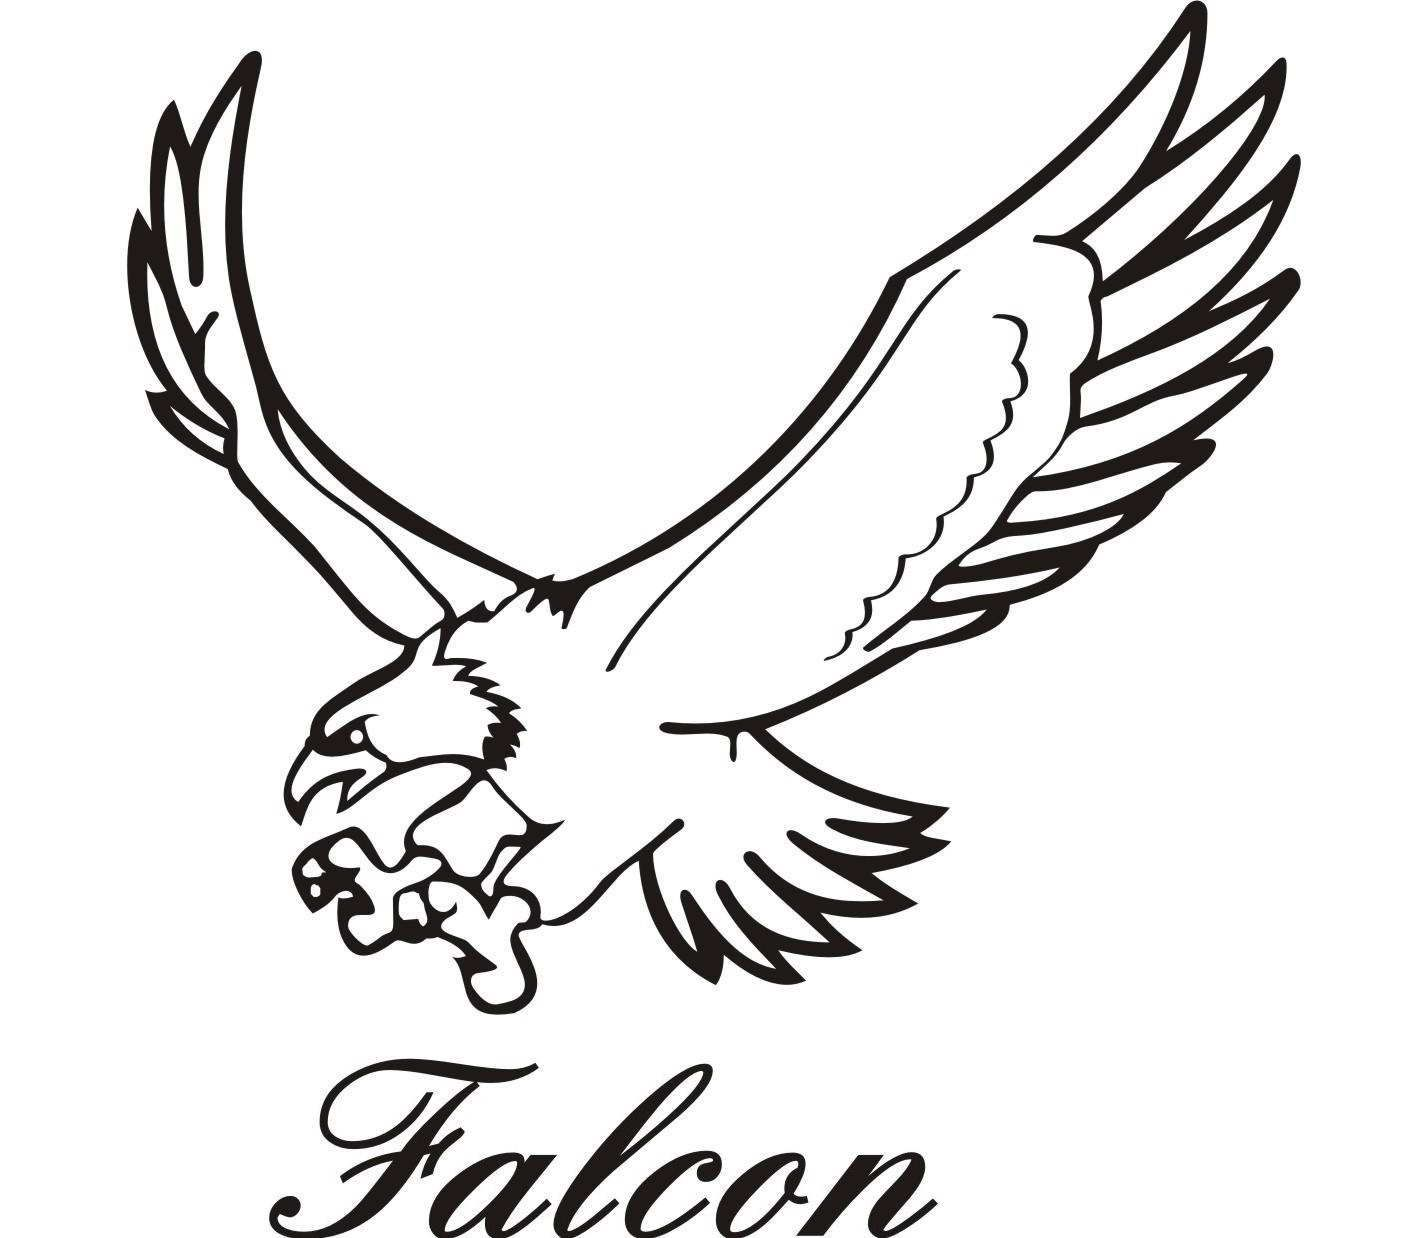 peregrine falcon drawings 2015 the best online collection of free rh pinterest co uk falcon clip art vector falcon clipart black and white